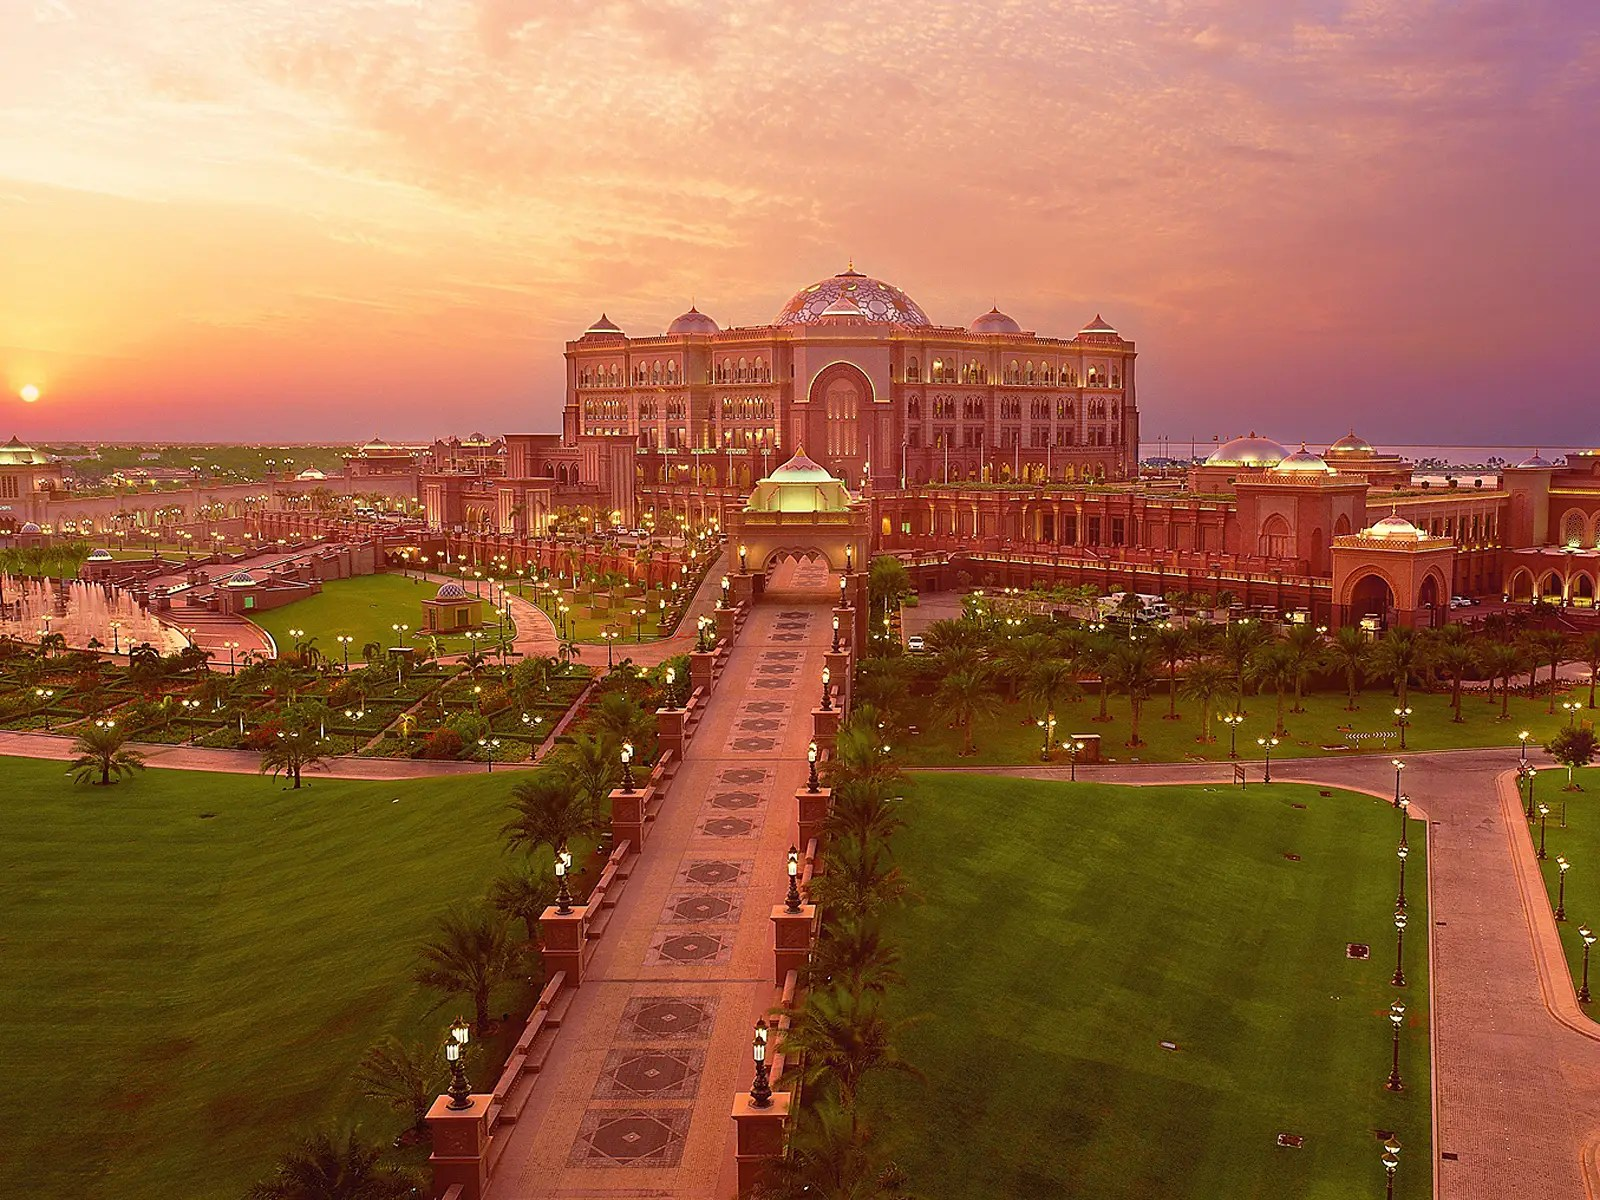 Welcome to the expansive Emirates Palace property that sits on almost 250 acres of land.